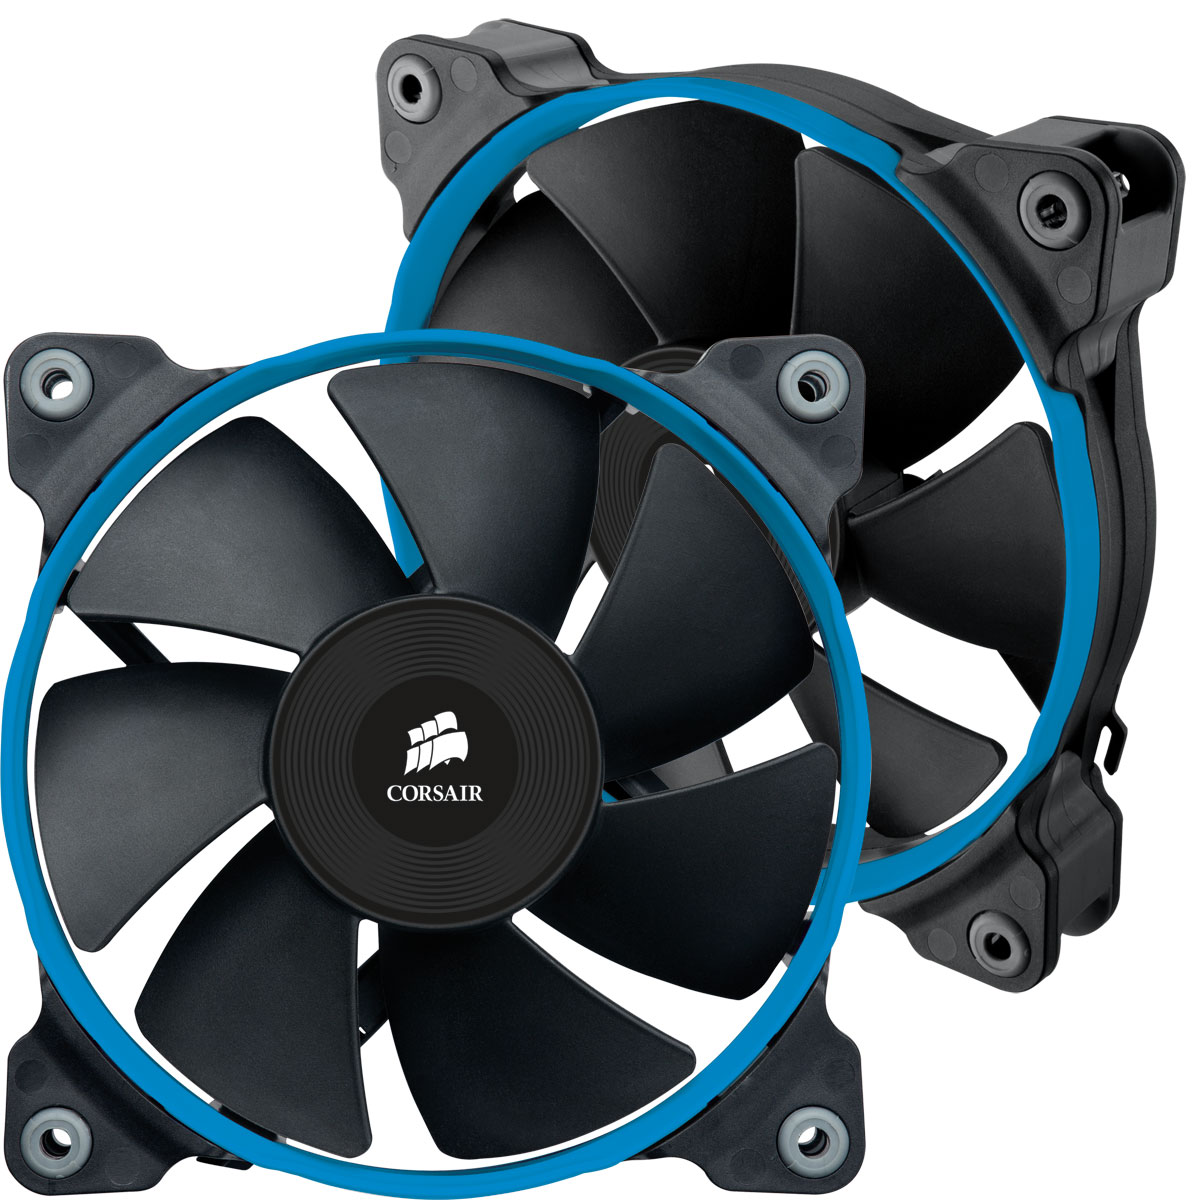 Ventilateur boîtier Corsair Air Series SP120 PWM High Performance Edition High Static Pressure Dual Pack Kit de 2 ventilateurs de boîtier PWM hautes performances 120 mm